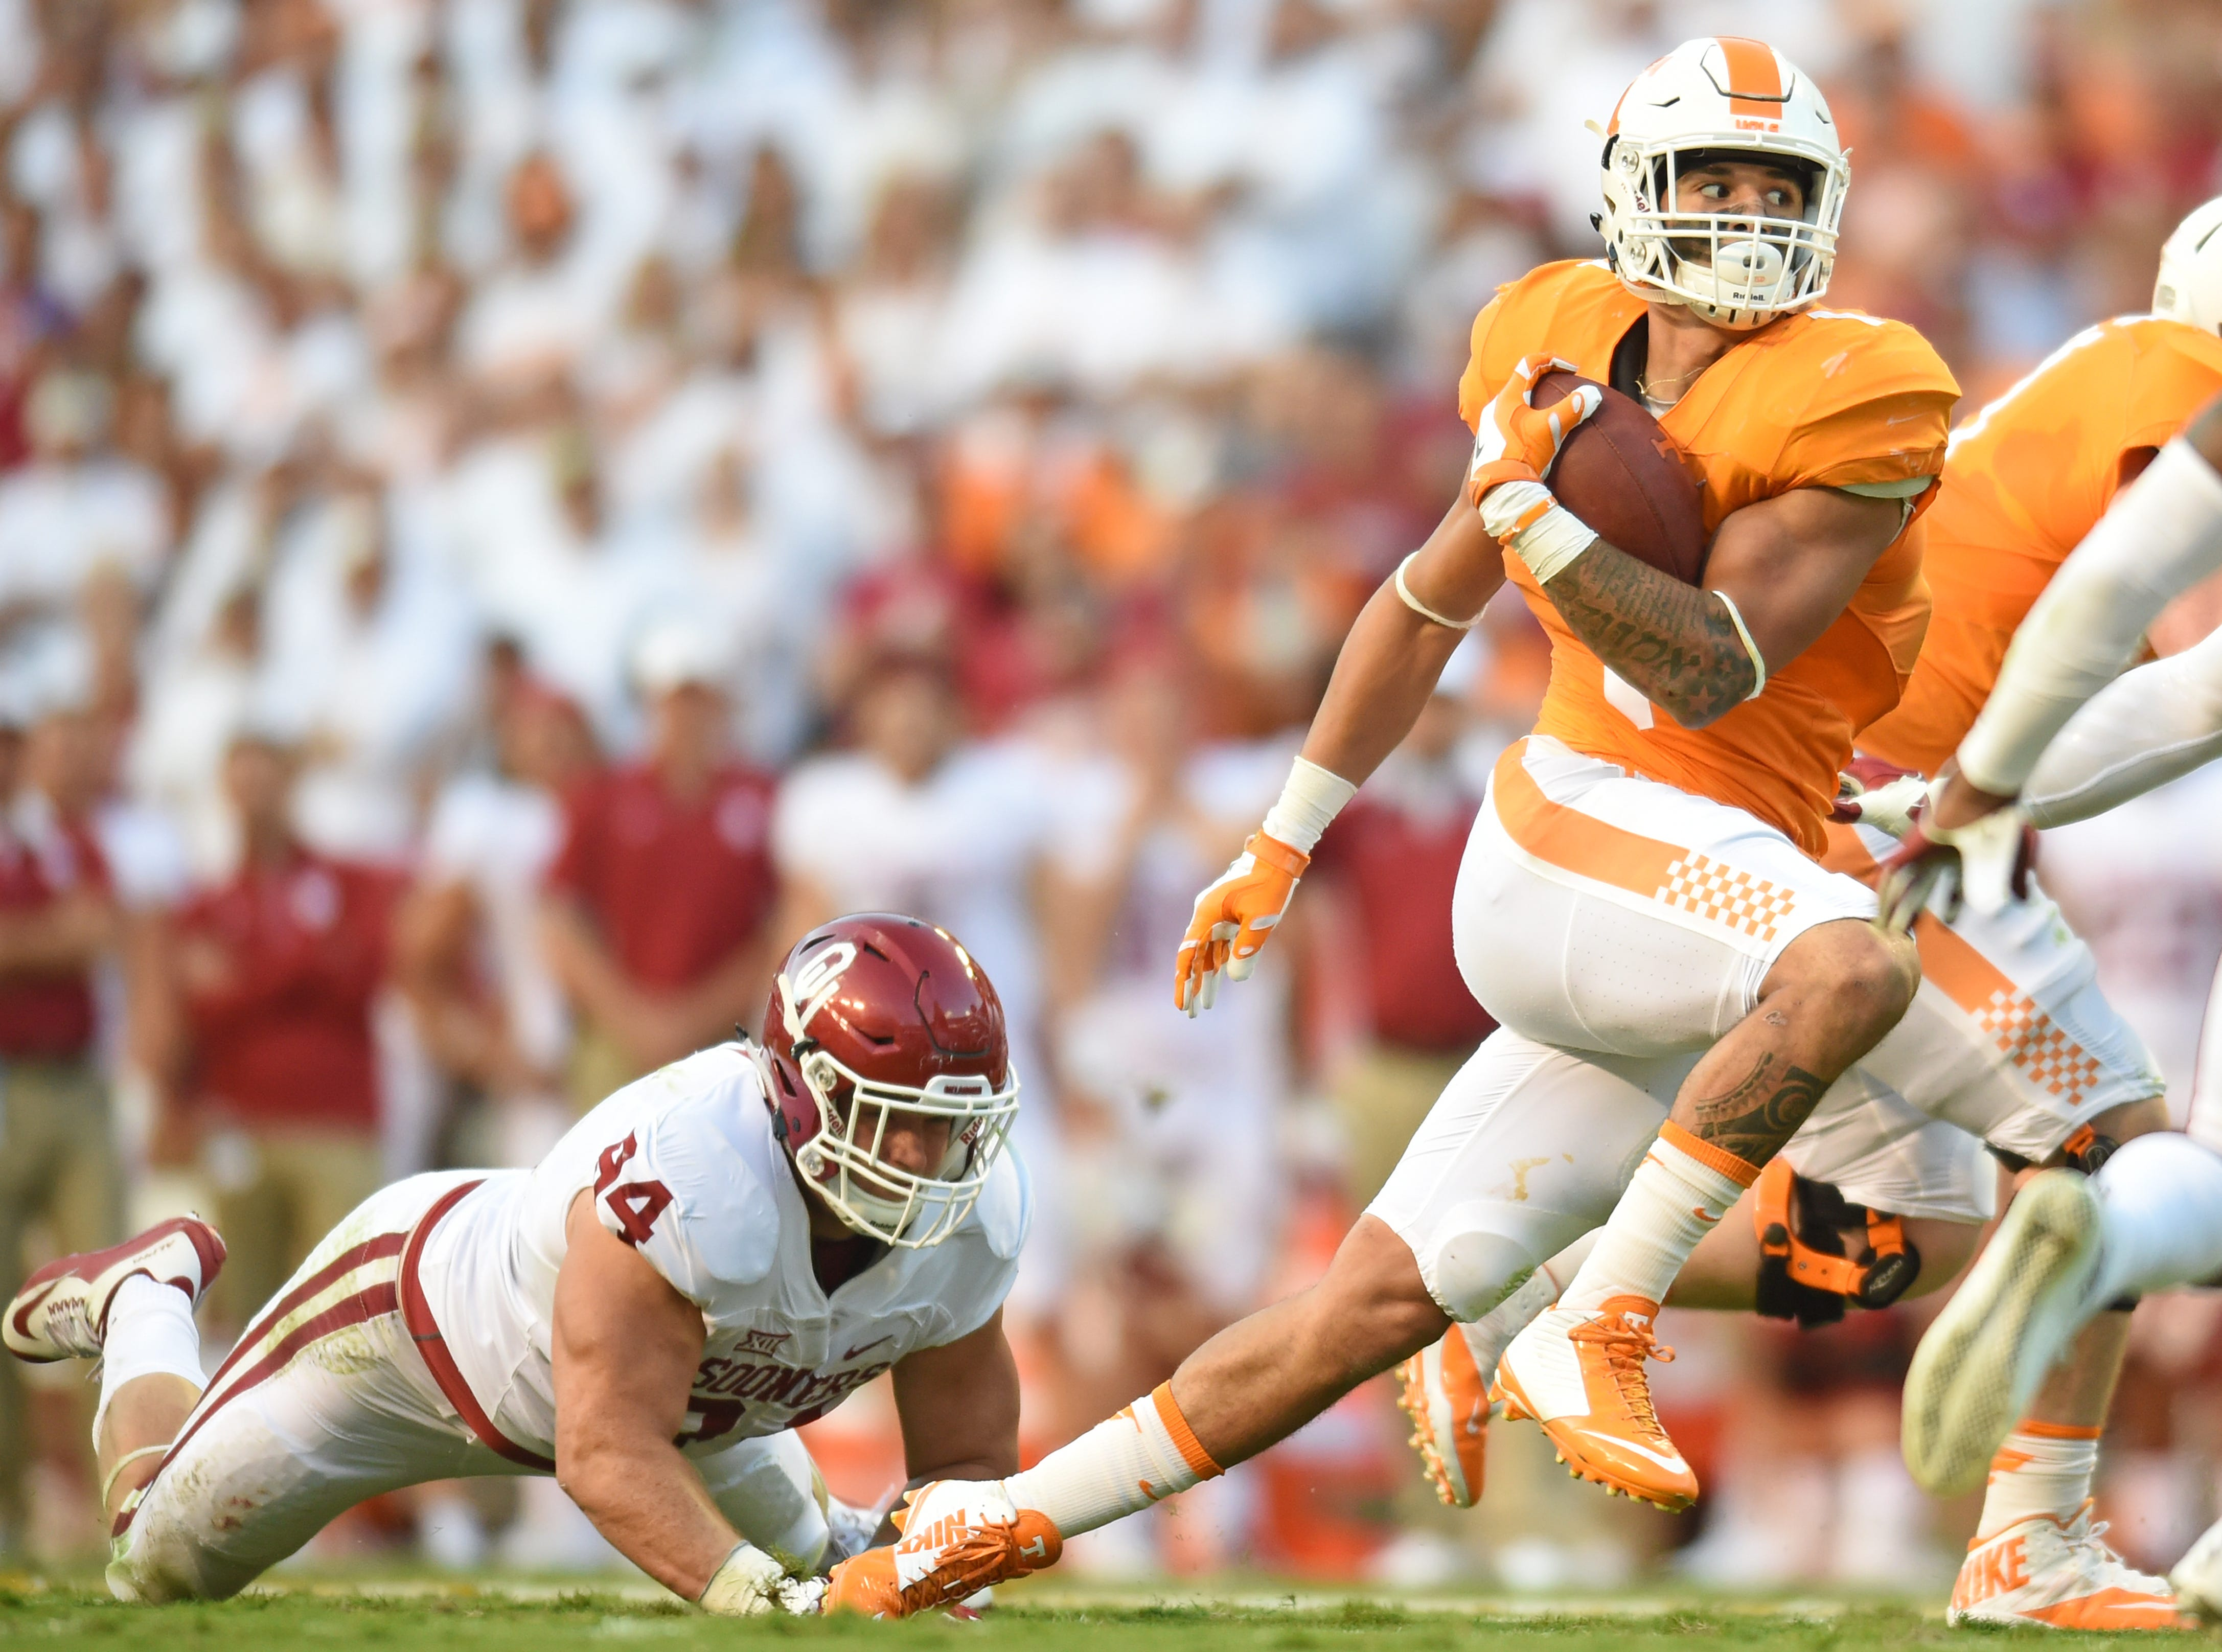 Tennessee running back Jalen Hurd (1) bursts away from Oklahoma fullback Jaxon Uhles (44) during the first half at Neyland Stadium on Saturday, Sept. 12, 2015 in Knoxville, Tenn.